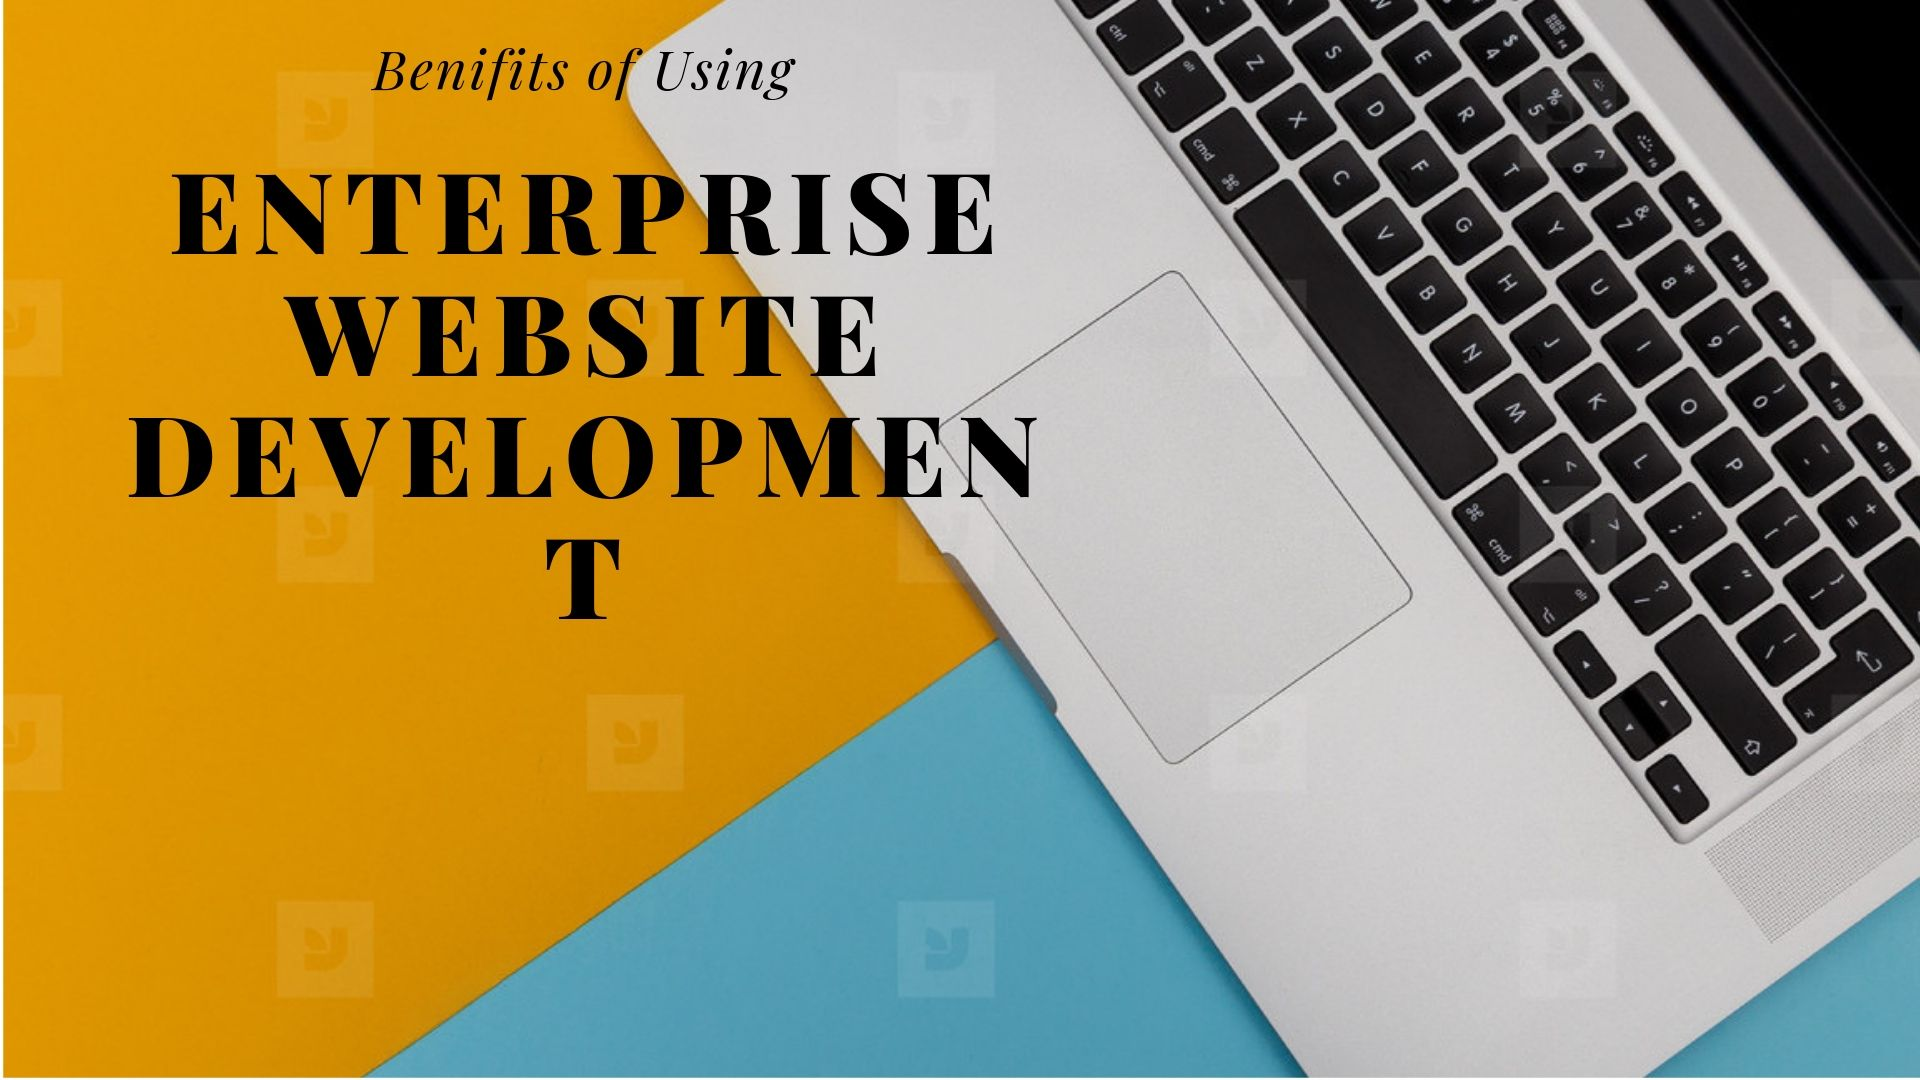 Benifits of Using Enterprise Website Development